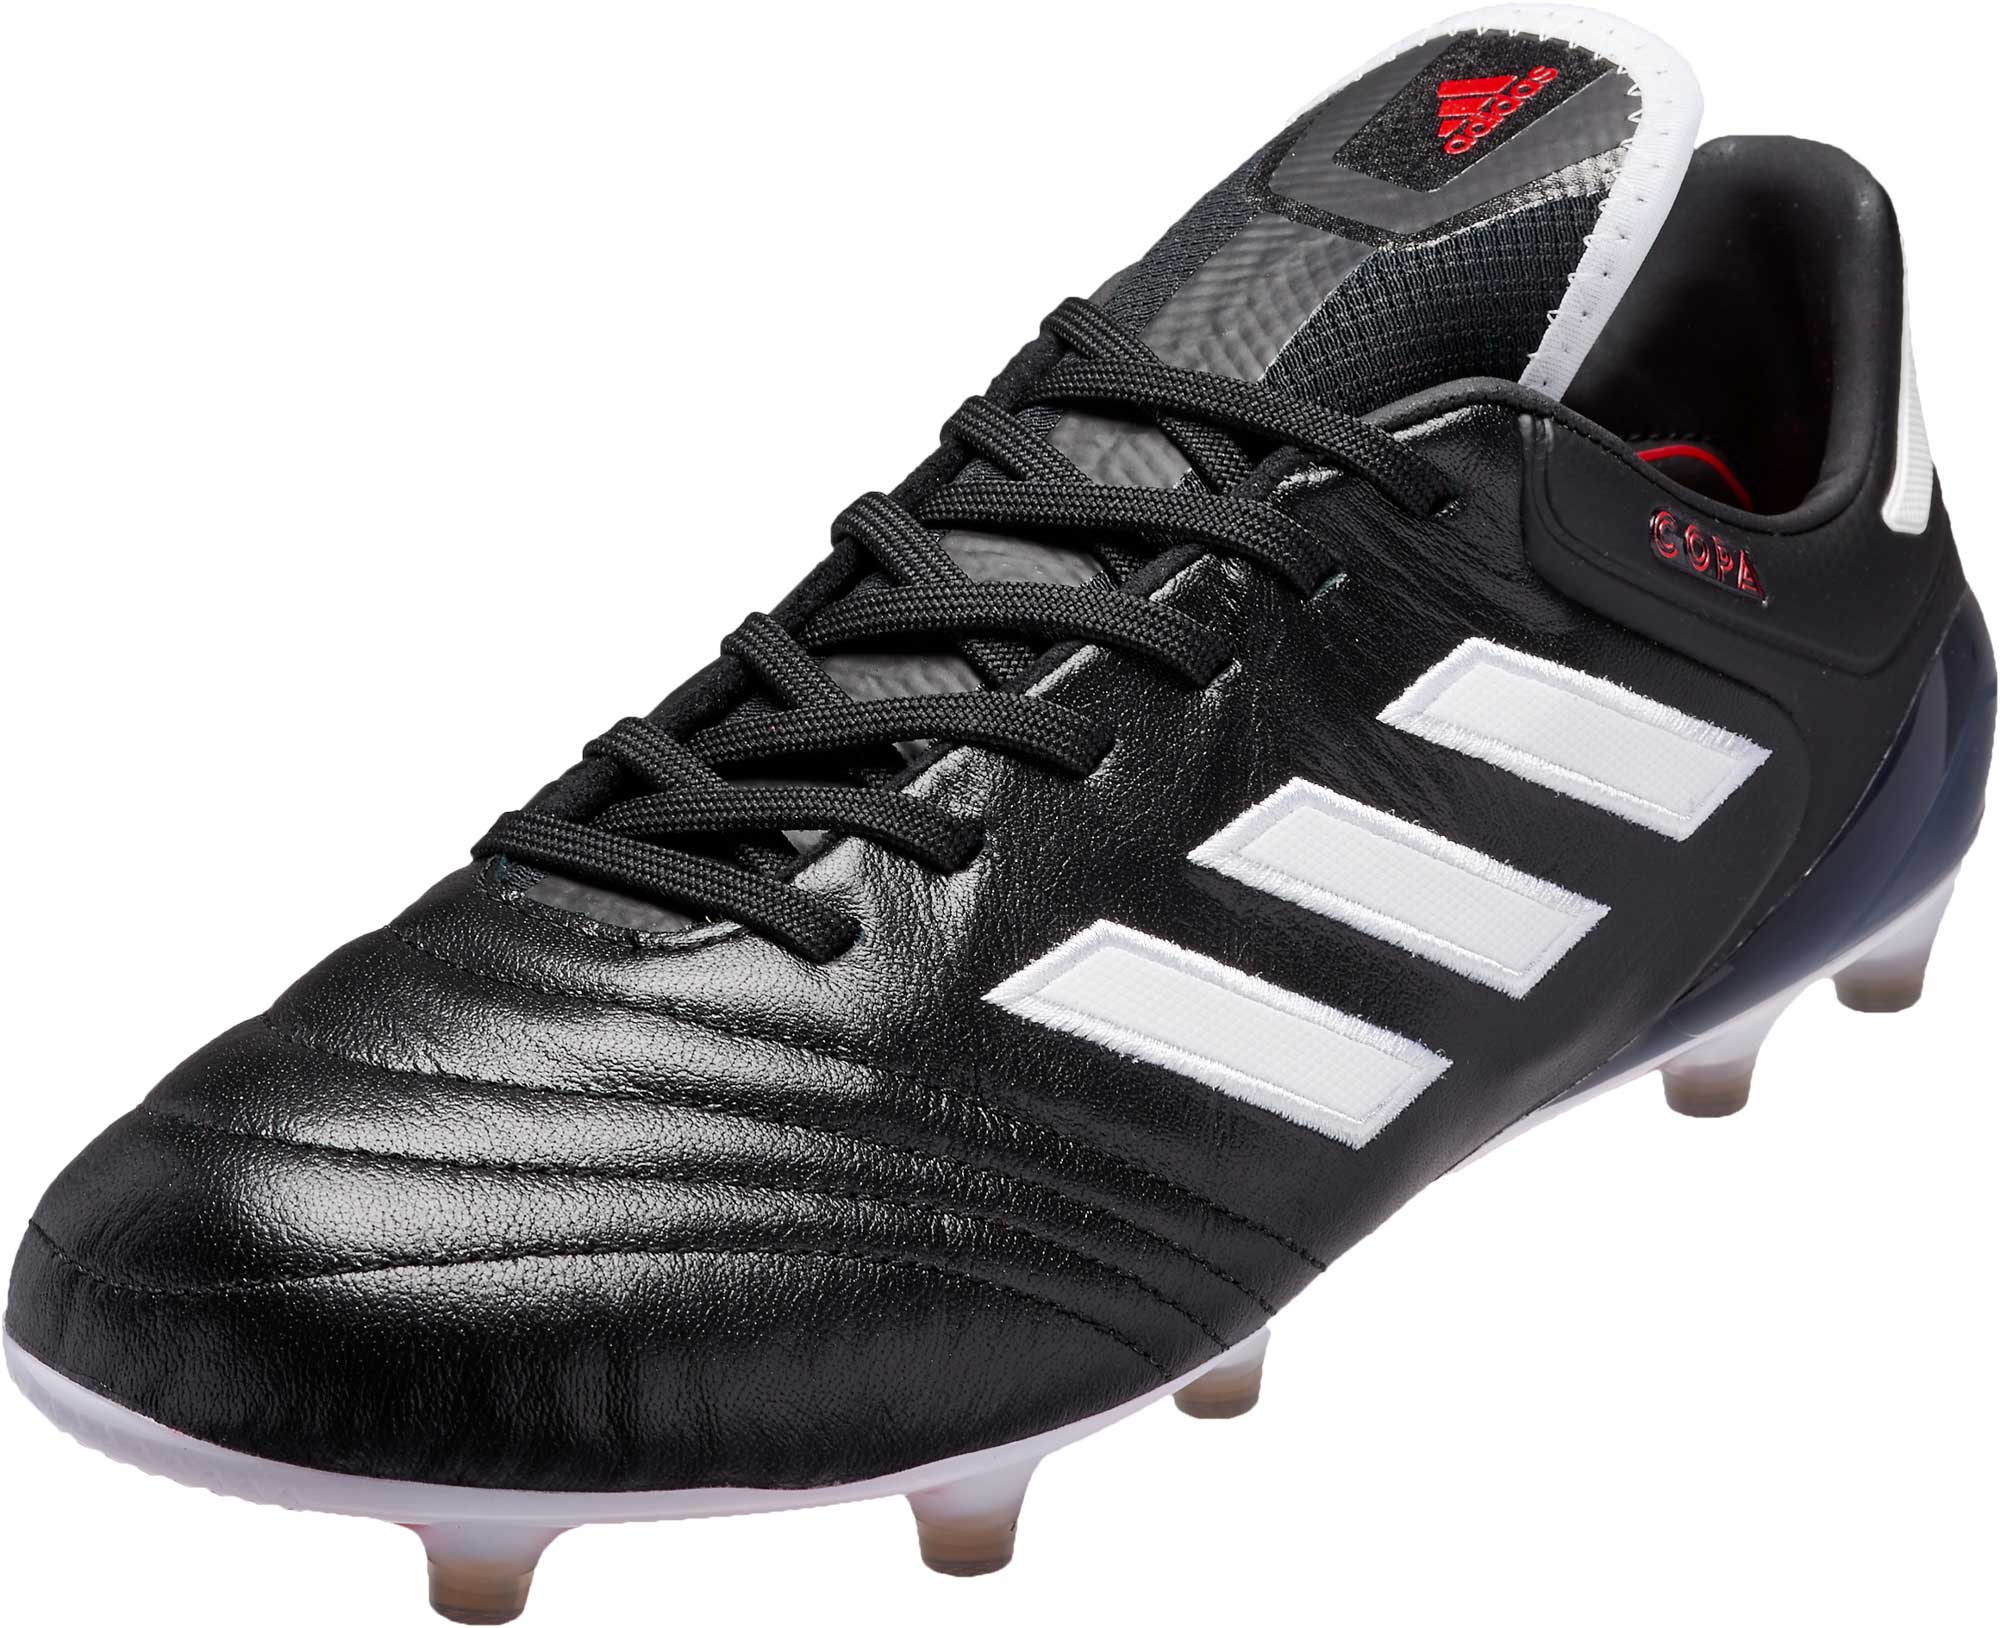 Black Red adidas Copa 17.1 FG Soccer Shoes - adidas Soccer Shoes 4c0637cfe